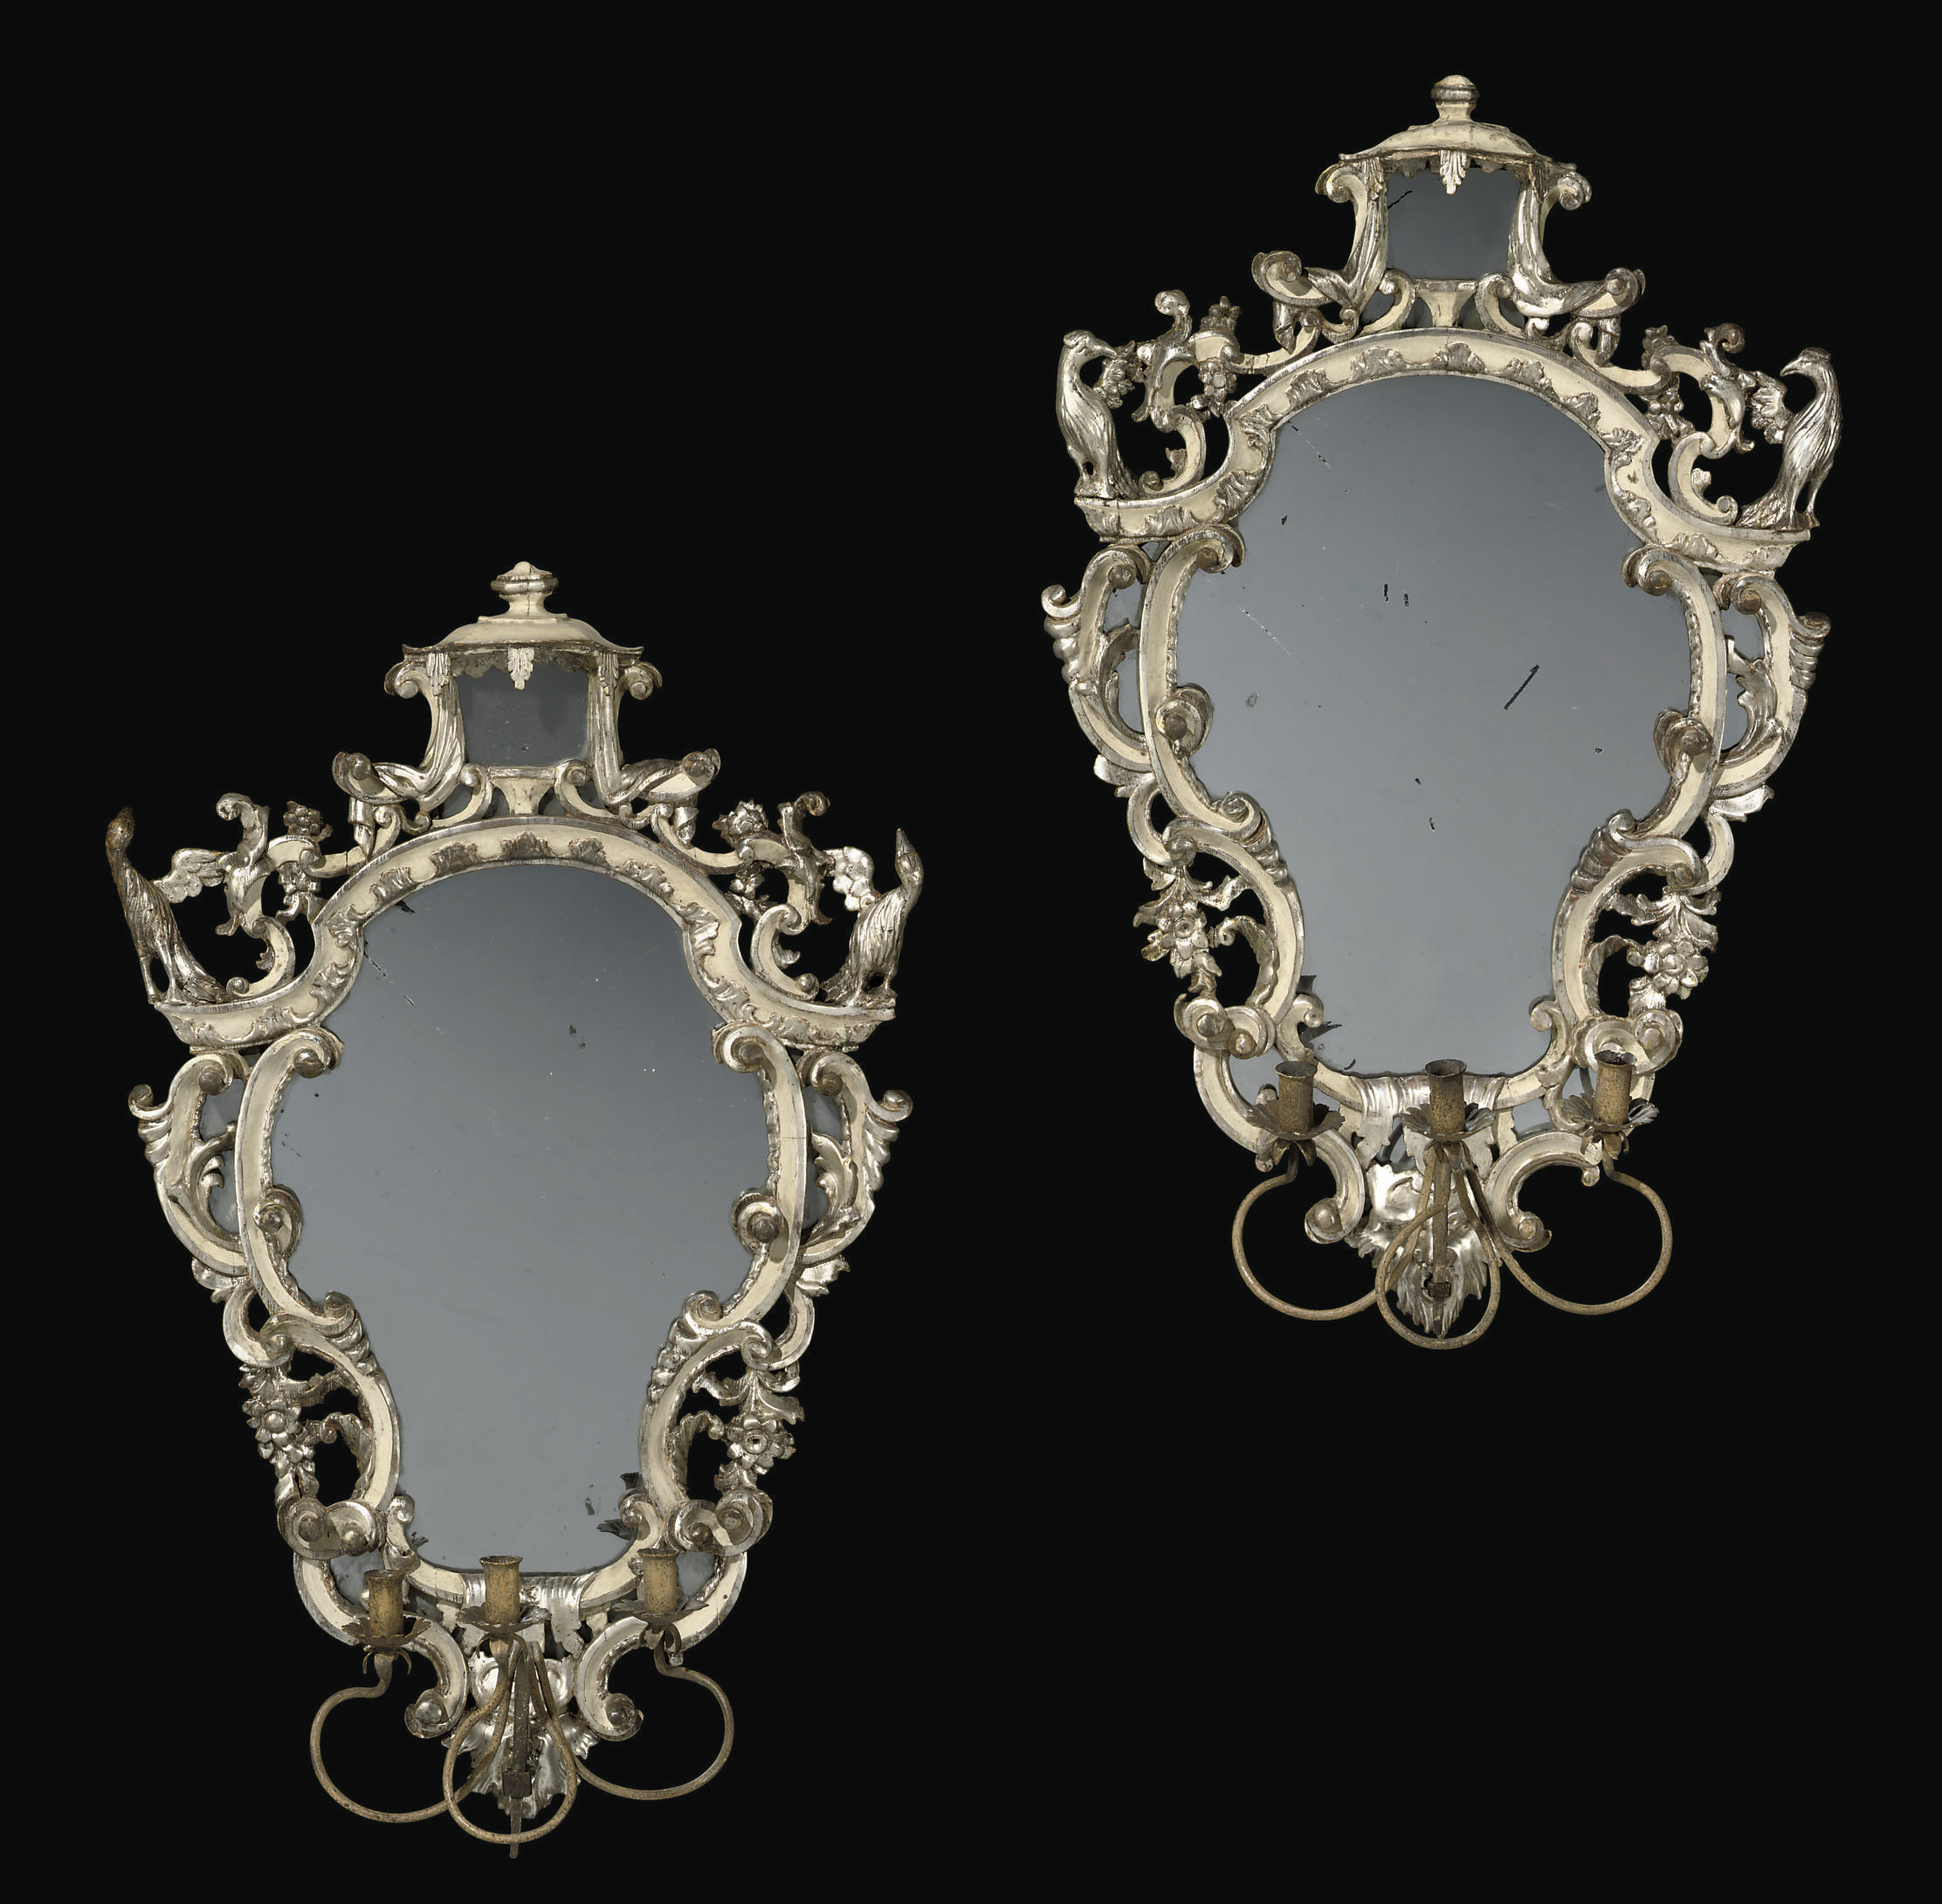 A PAIR OF SOUTH ITALIAN SILVER